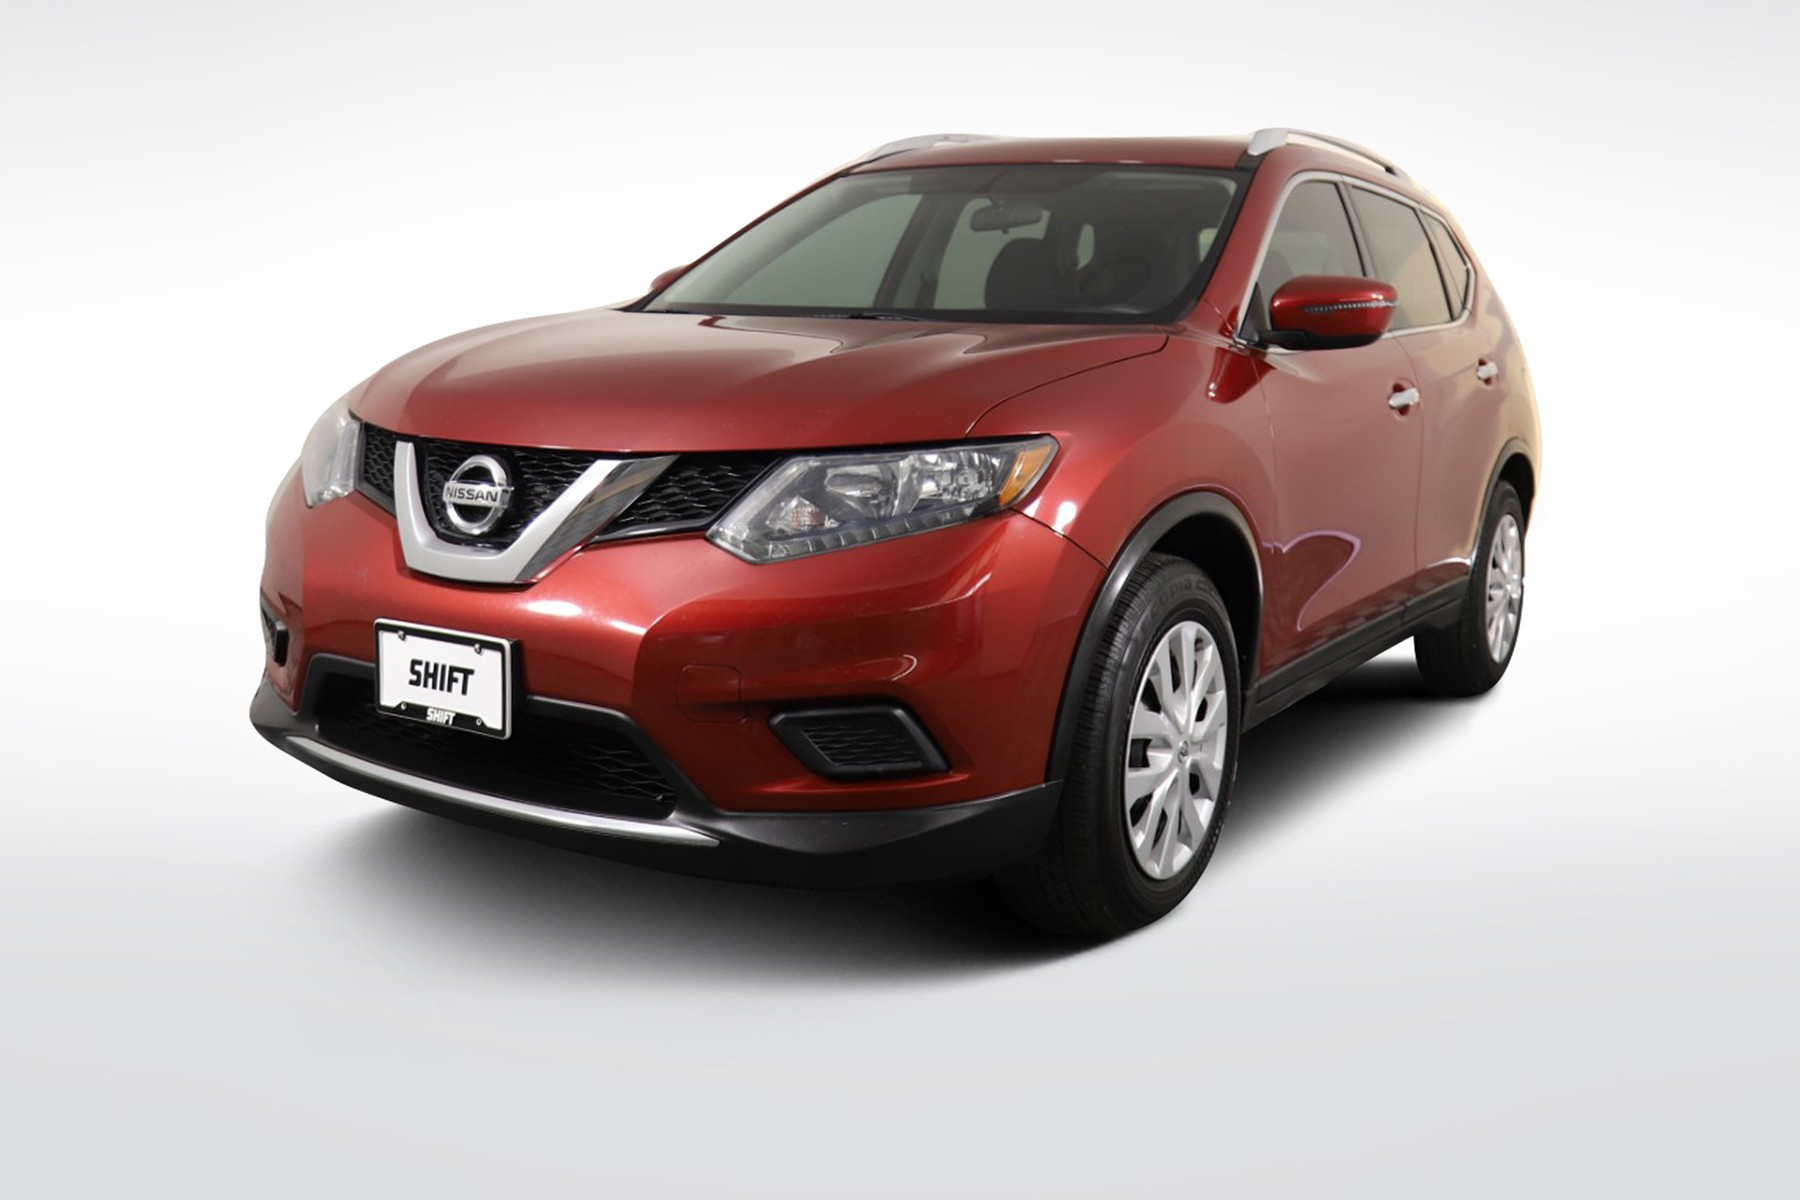 2016 Nissan Rogue S (from $16,100)